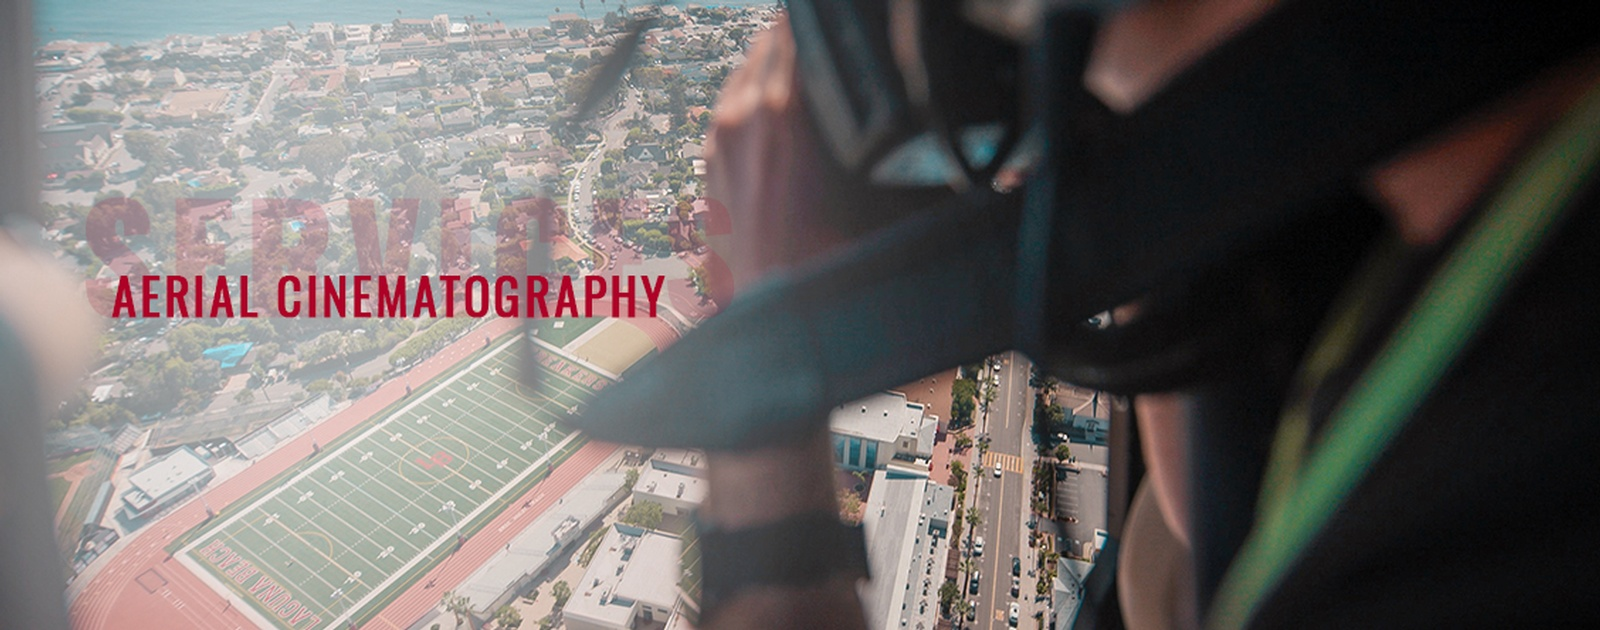 Aerial Cinematography by Sparkle Films LLC - Aerial Videography Orange County